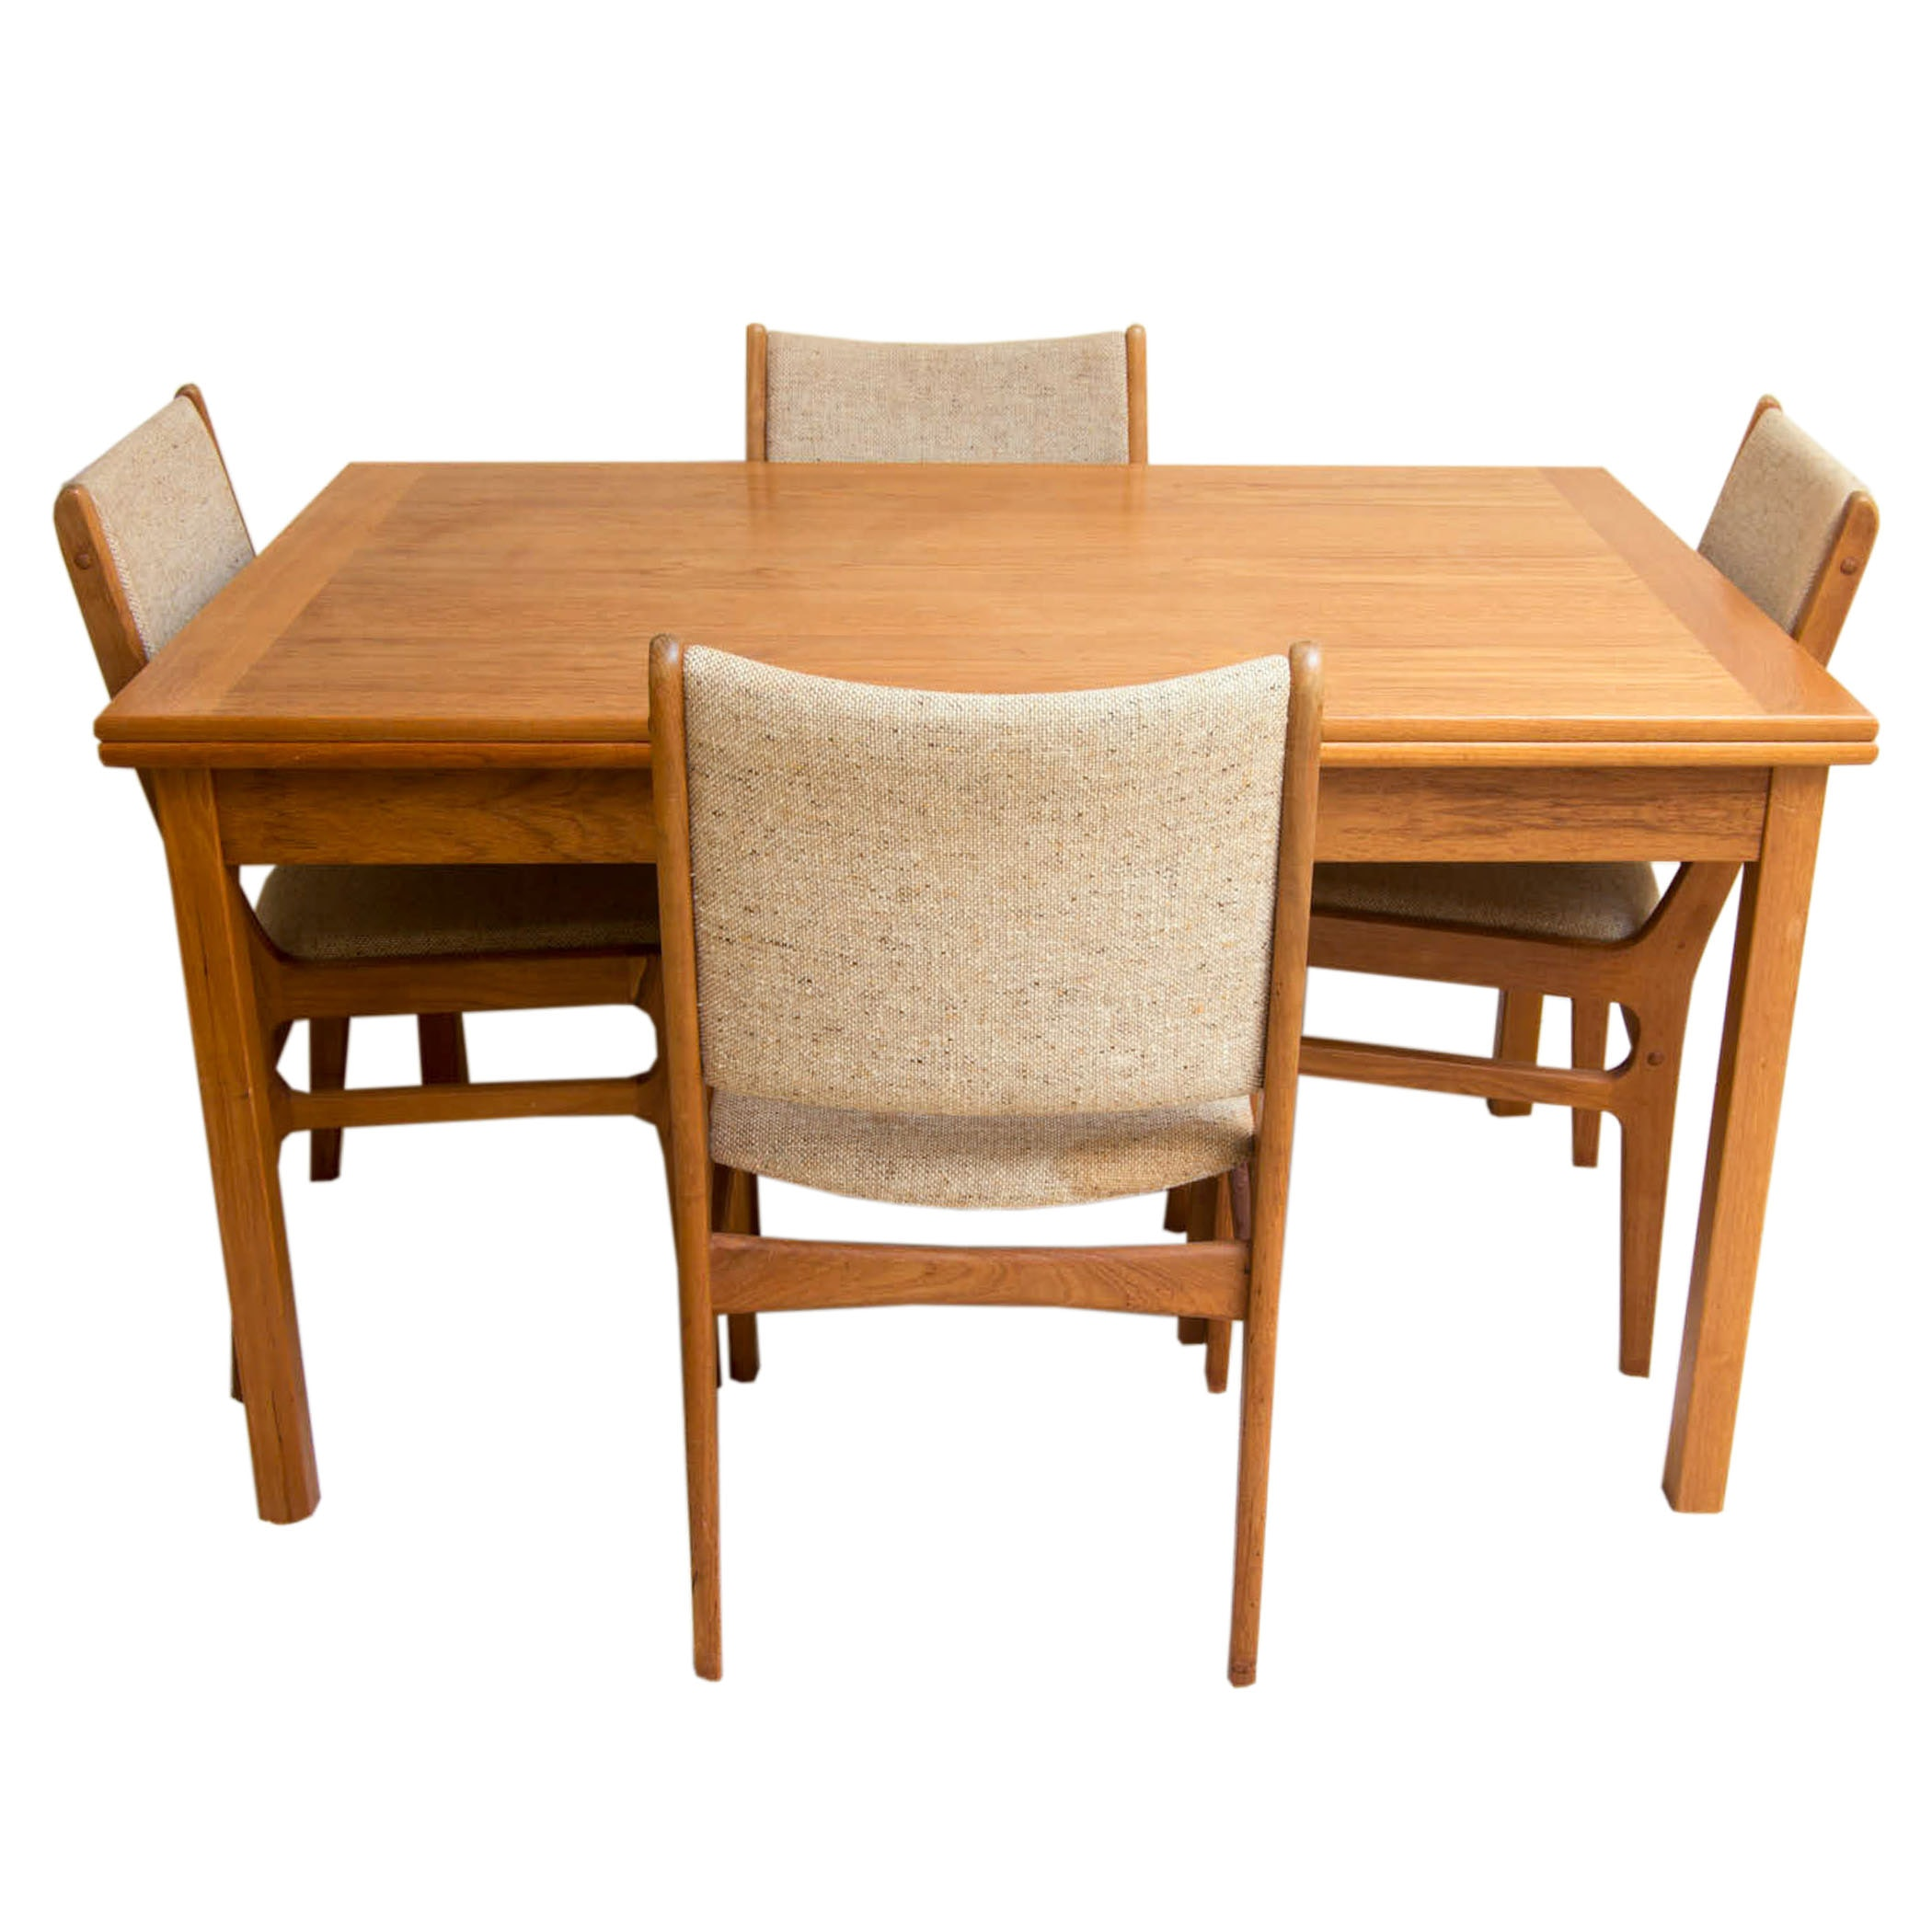 Mid Century Modern Teak Chairs by D-Scan With Dining Table